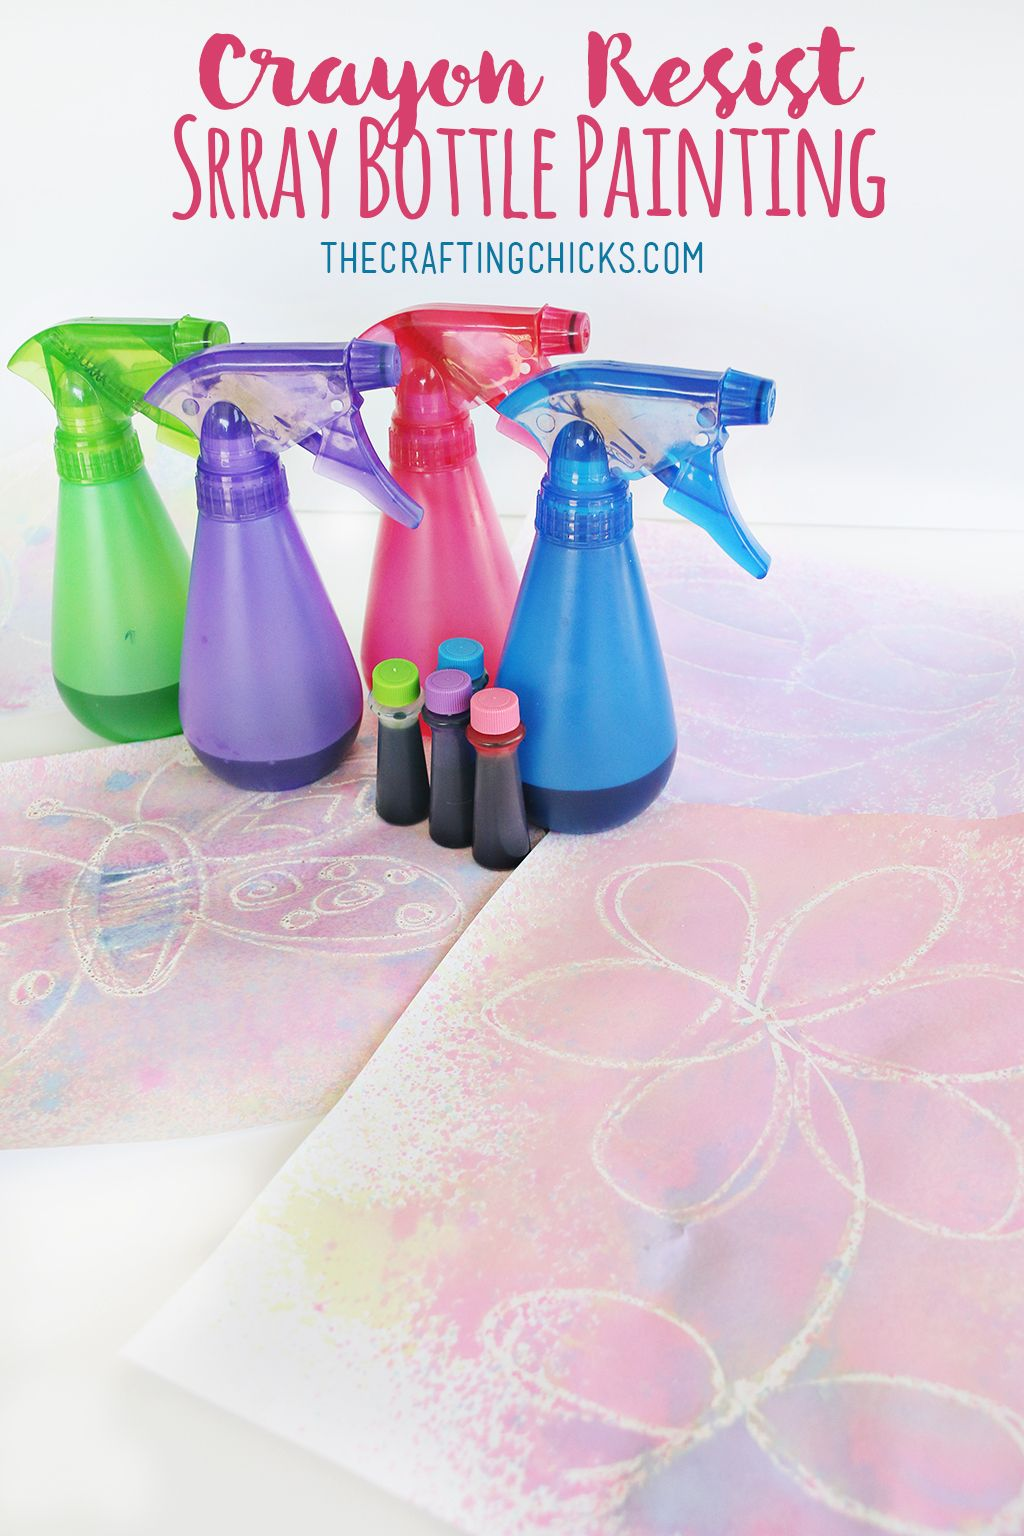 Crayon Resist Spray Bottle Painting Fun Ideas For Kids Bottle